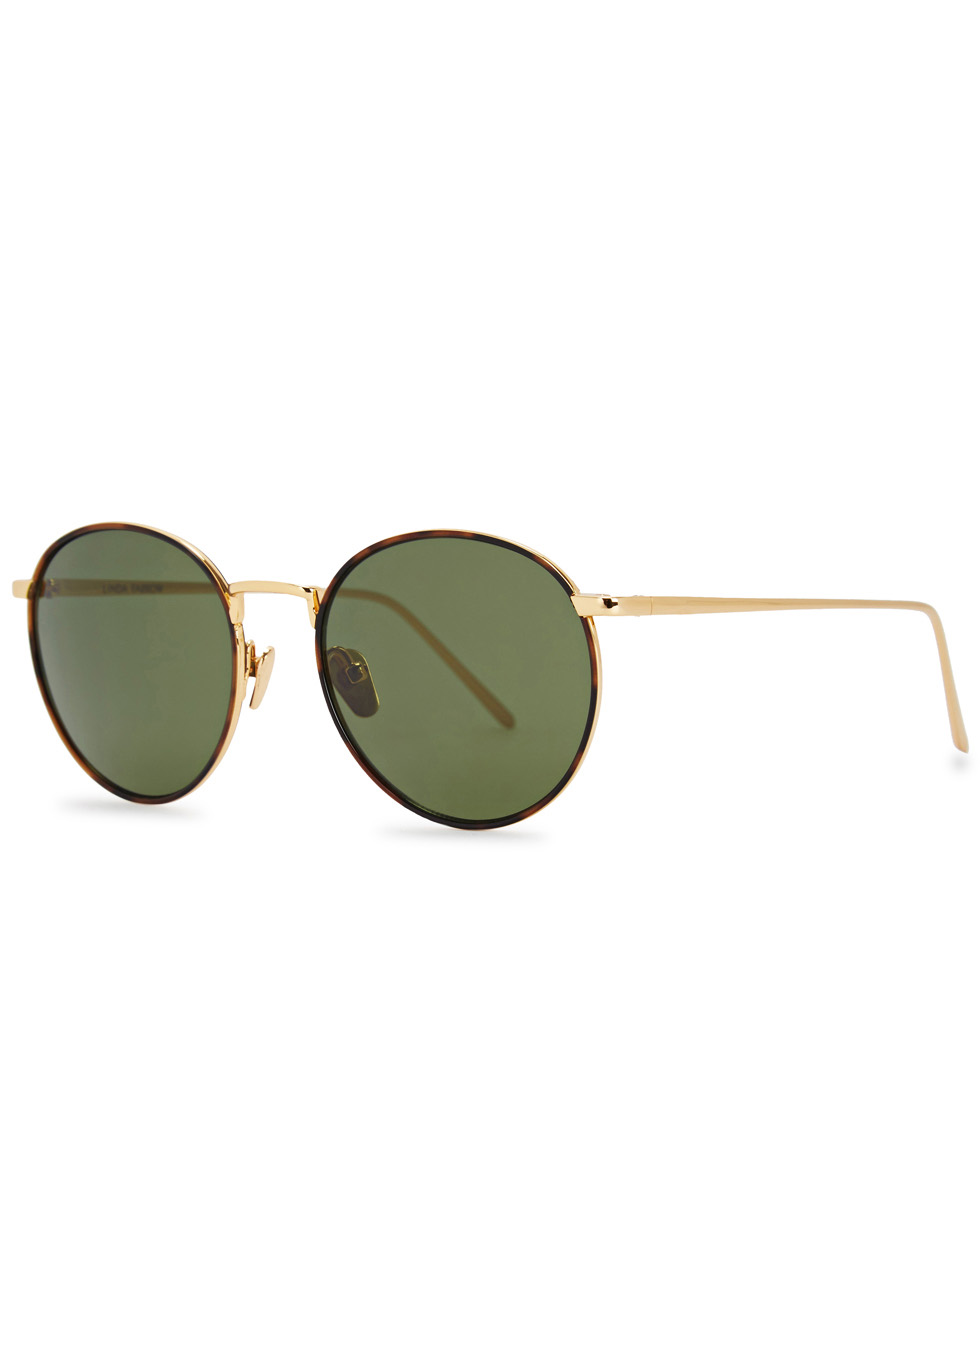 LINDA FARROW LUXE 704 GOLD-PLATED ROUND-FRAME SUNGLASSES